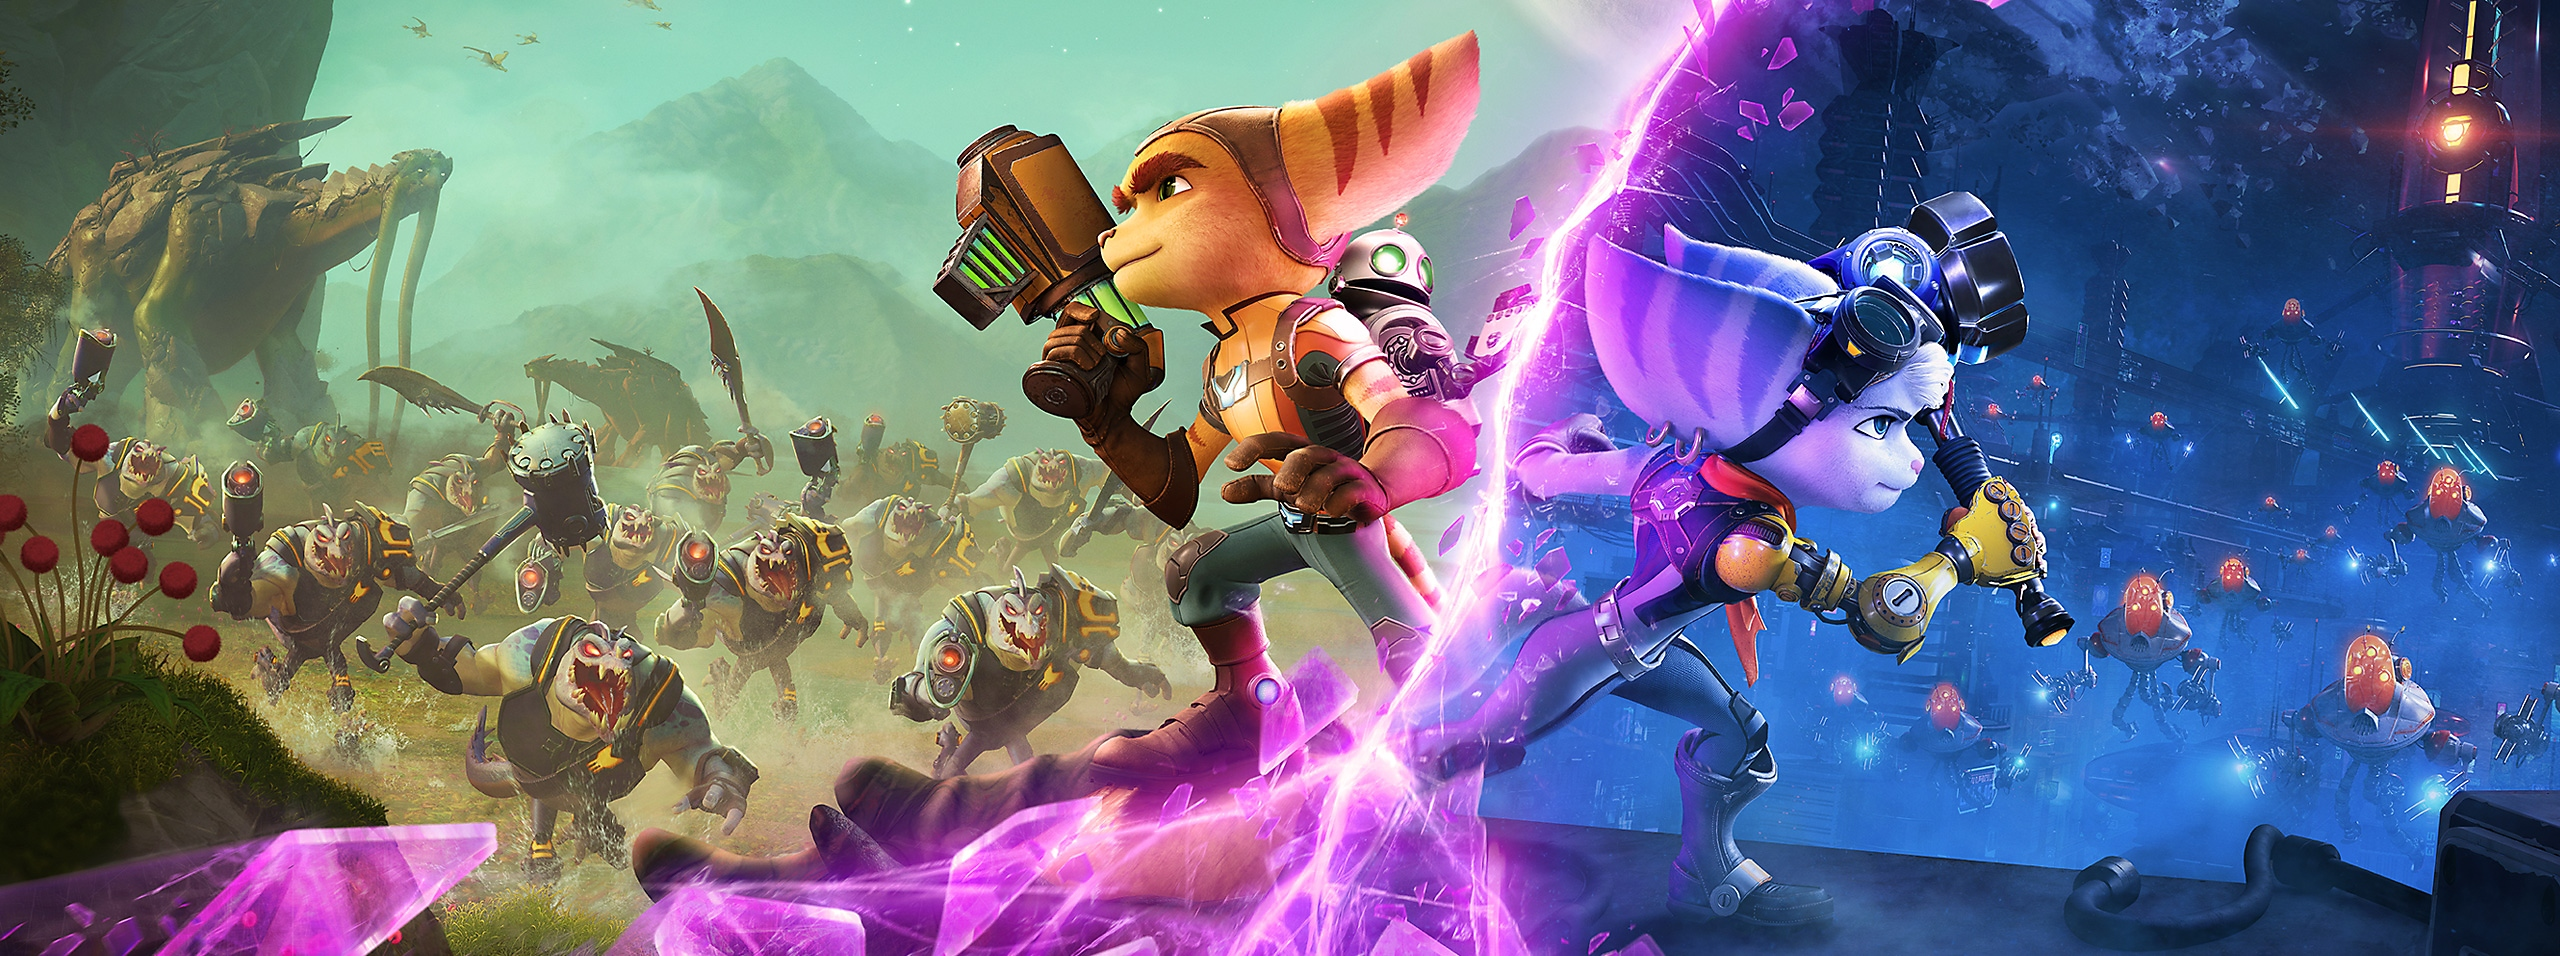 Ratchet & Clank: Rift Apart - Key Art